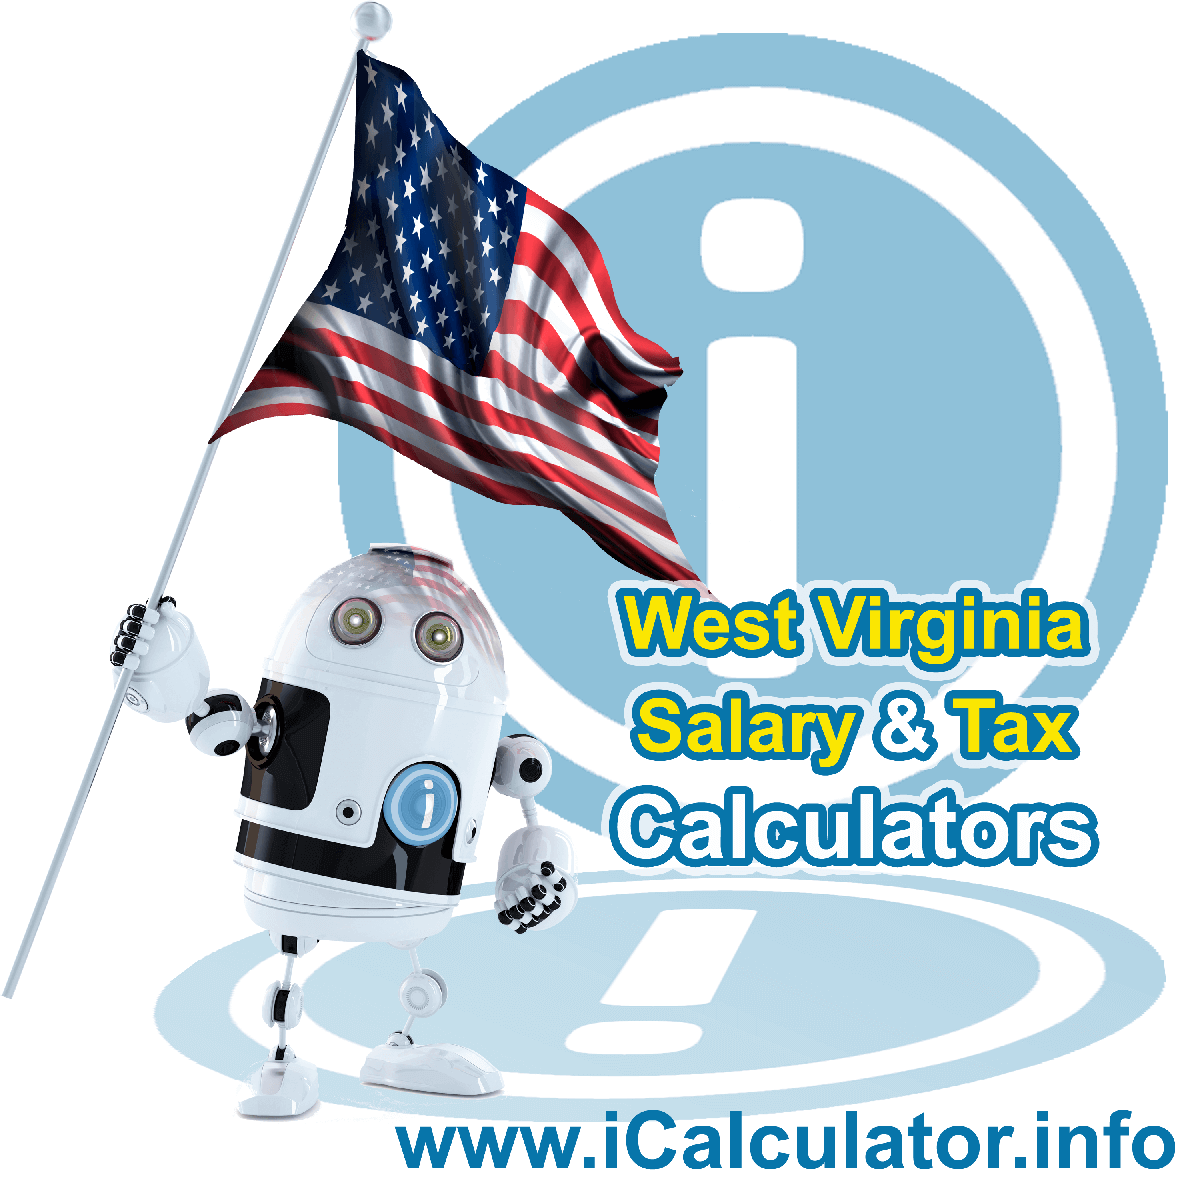 West Virginia Salary Calculator 2019 | iCalculator | The West Virginia Salary Calculator allows you to quickly calculate your salary after tax including West Virginia State Tax, Federal State Tax, Medicare Deductions, Social Security, Capital Gains and other income tax and salary deductions complete with supporting West Virginia state tax tables